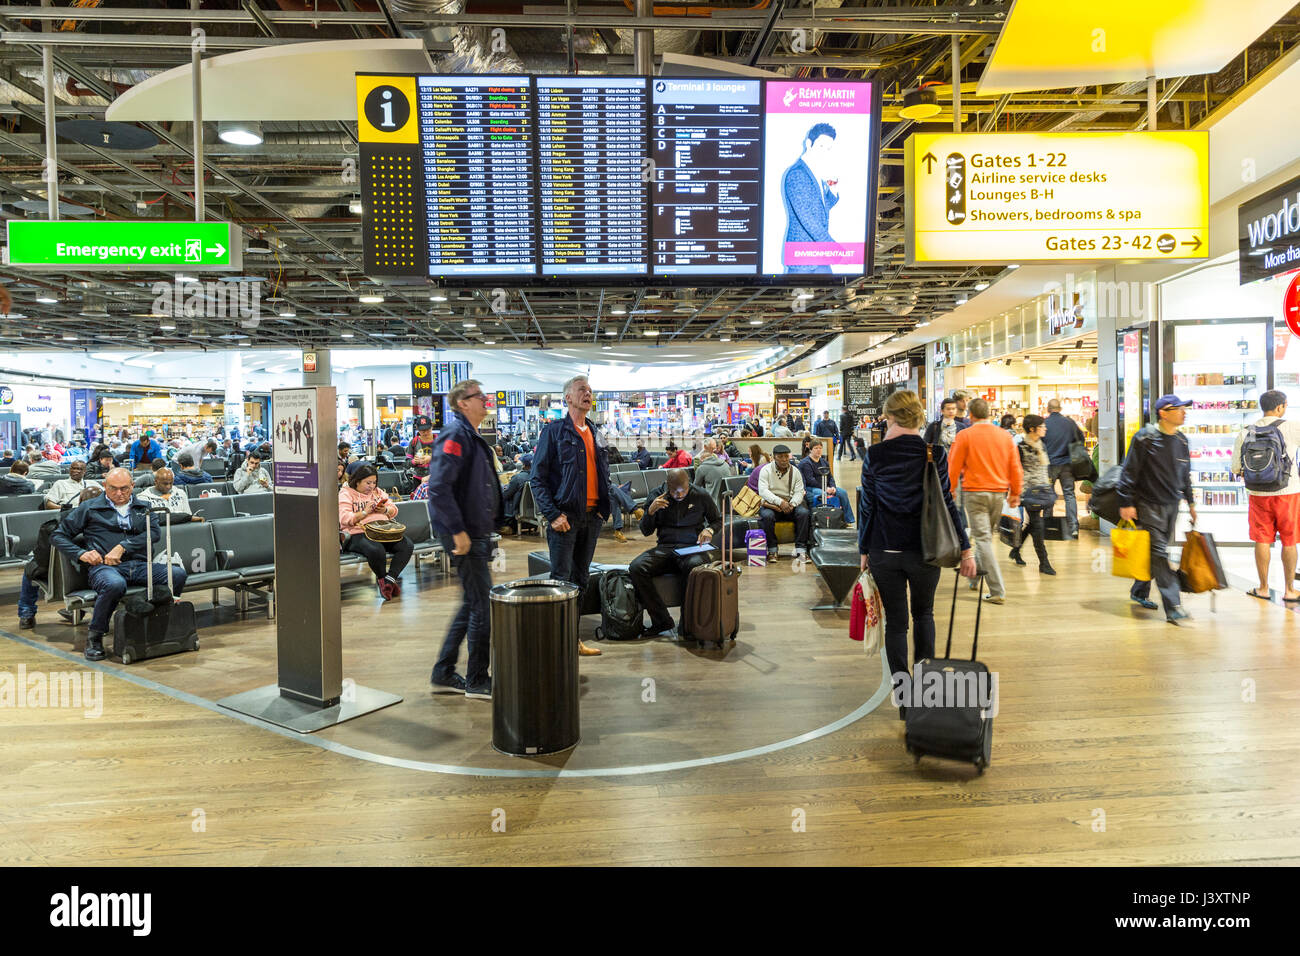 Travellers at Heathrow airport, London, UK - Stock Image